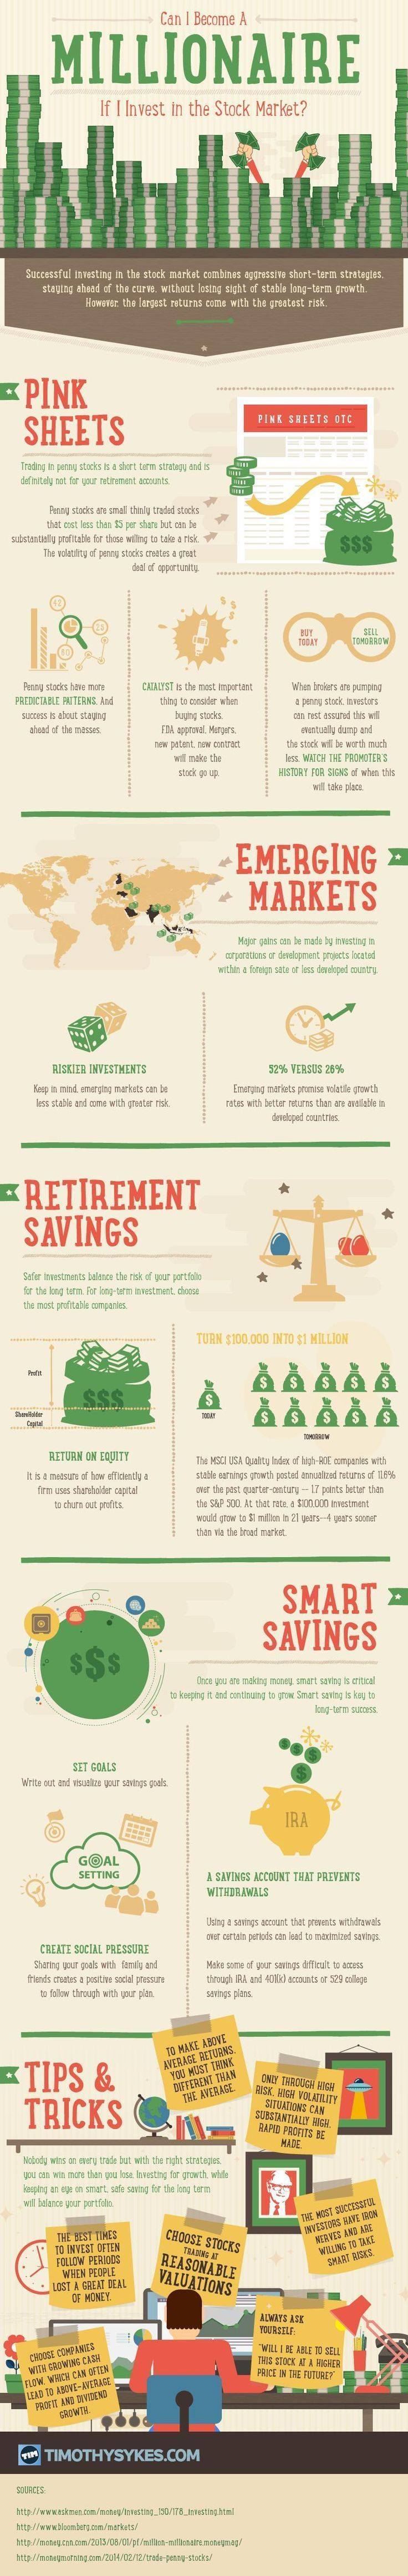 Can I Become A Millionaire If I Invest In The Stock Market? #infographic {More on Trading|Successful trading|Trade erfolgreich|FOREX-Trading|Forex-Analysis} on